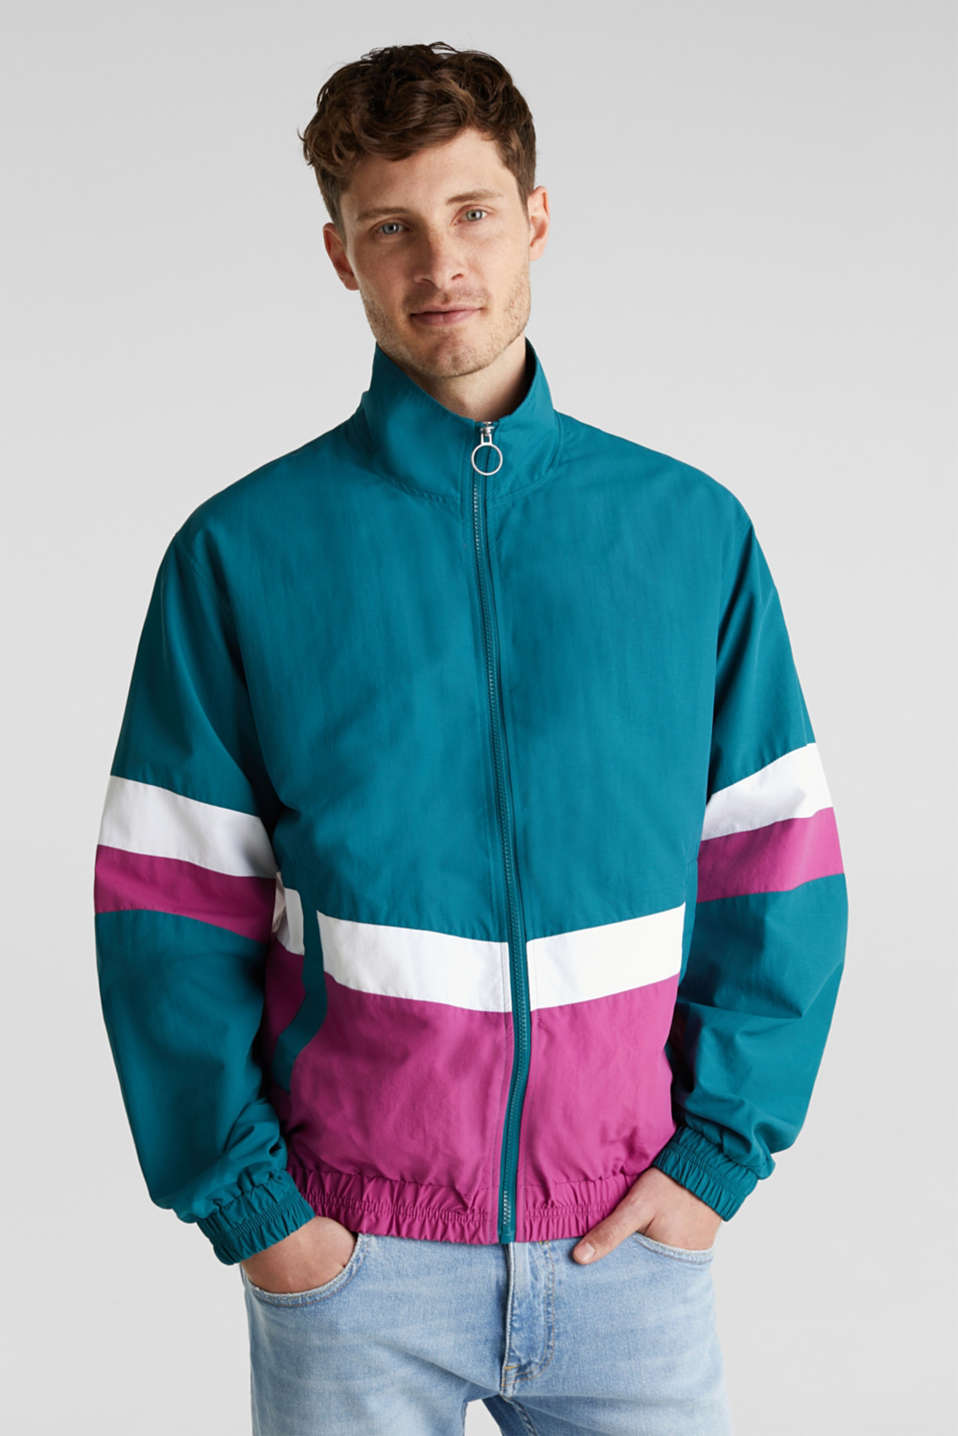 edc - Retro bomber jacket made of nylon